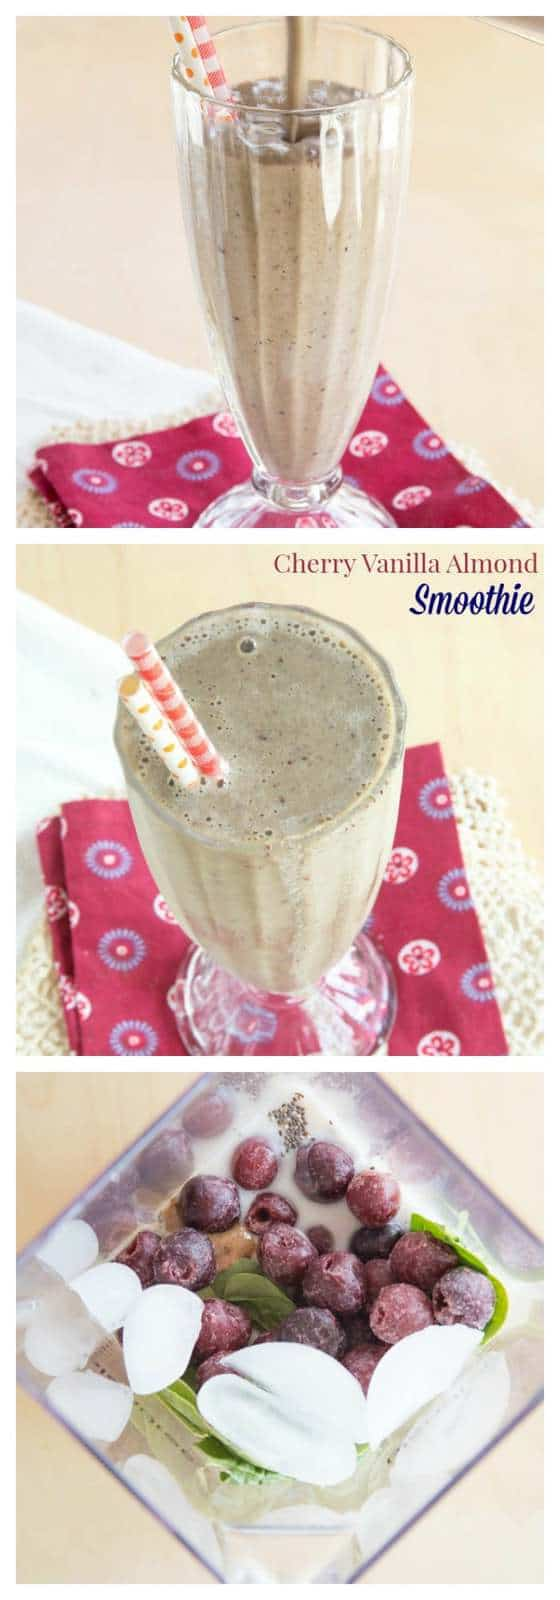 Cherry Vanilla Almond Smoothie - made with cherries and almond butter for a creamy, sweet, and healthy snack or breakfast! My favorite green smoothie recipe! | cupcakesandkalechips.com | gluten free